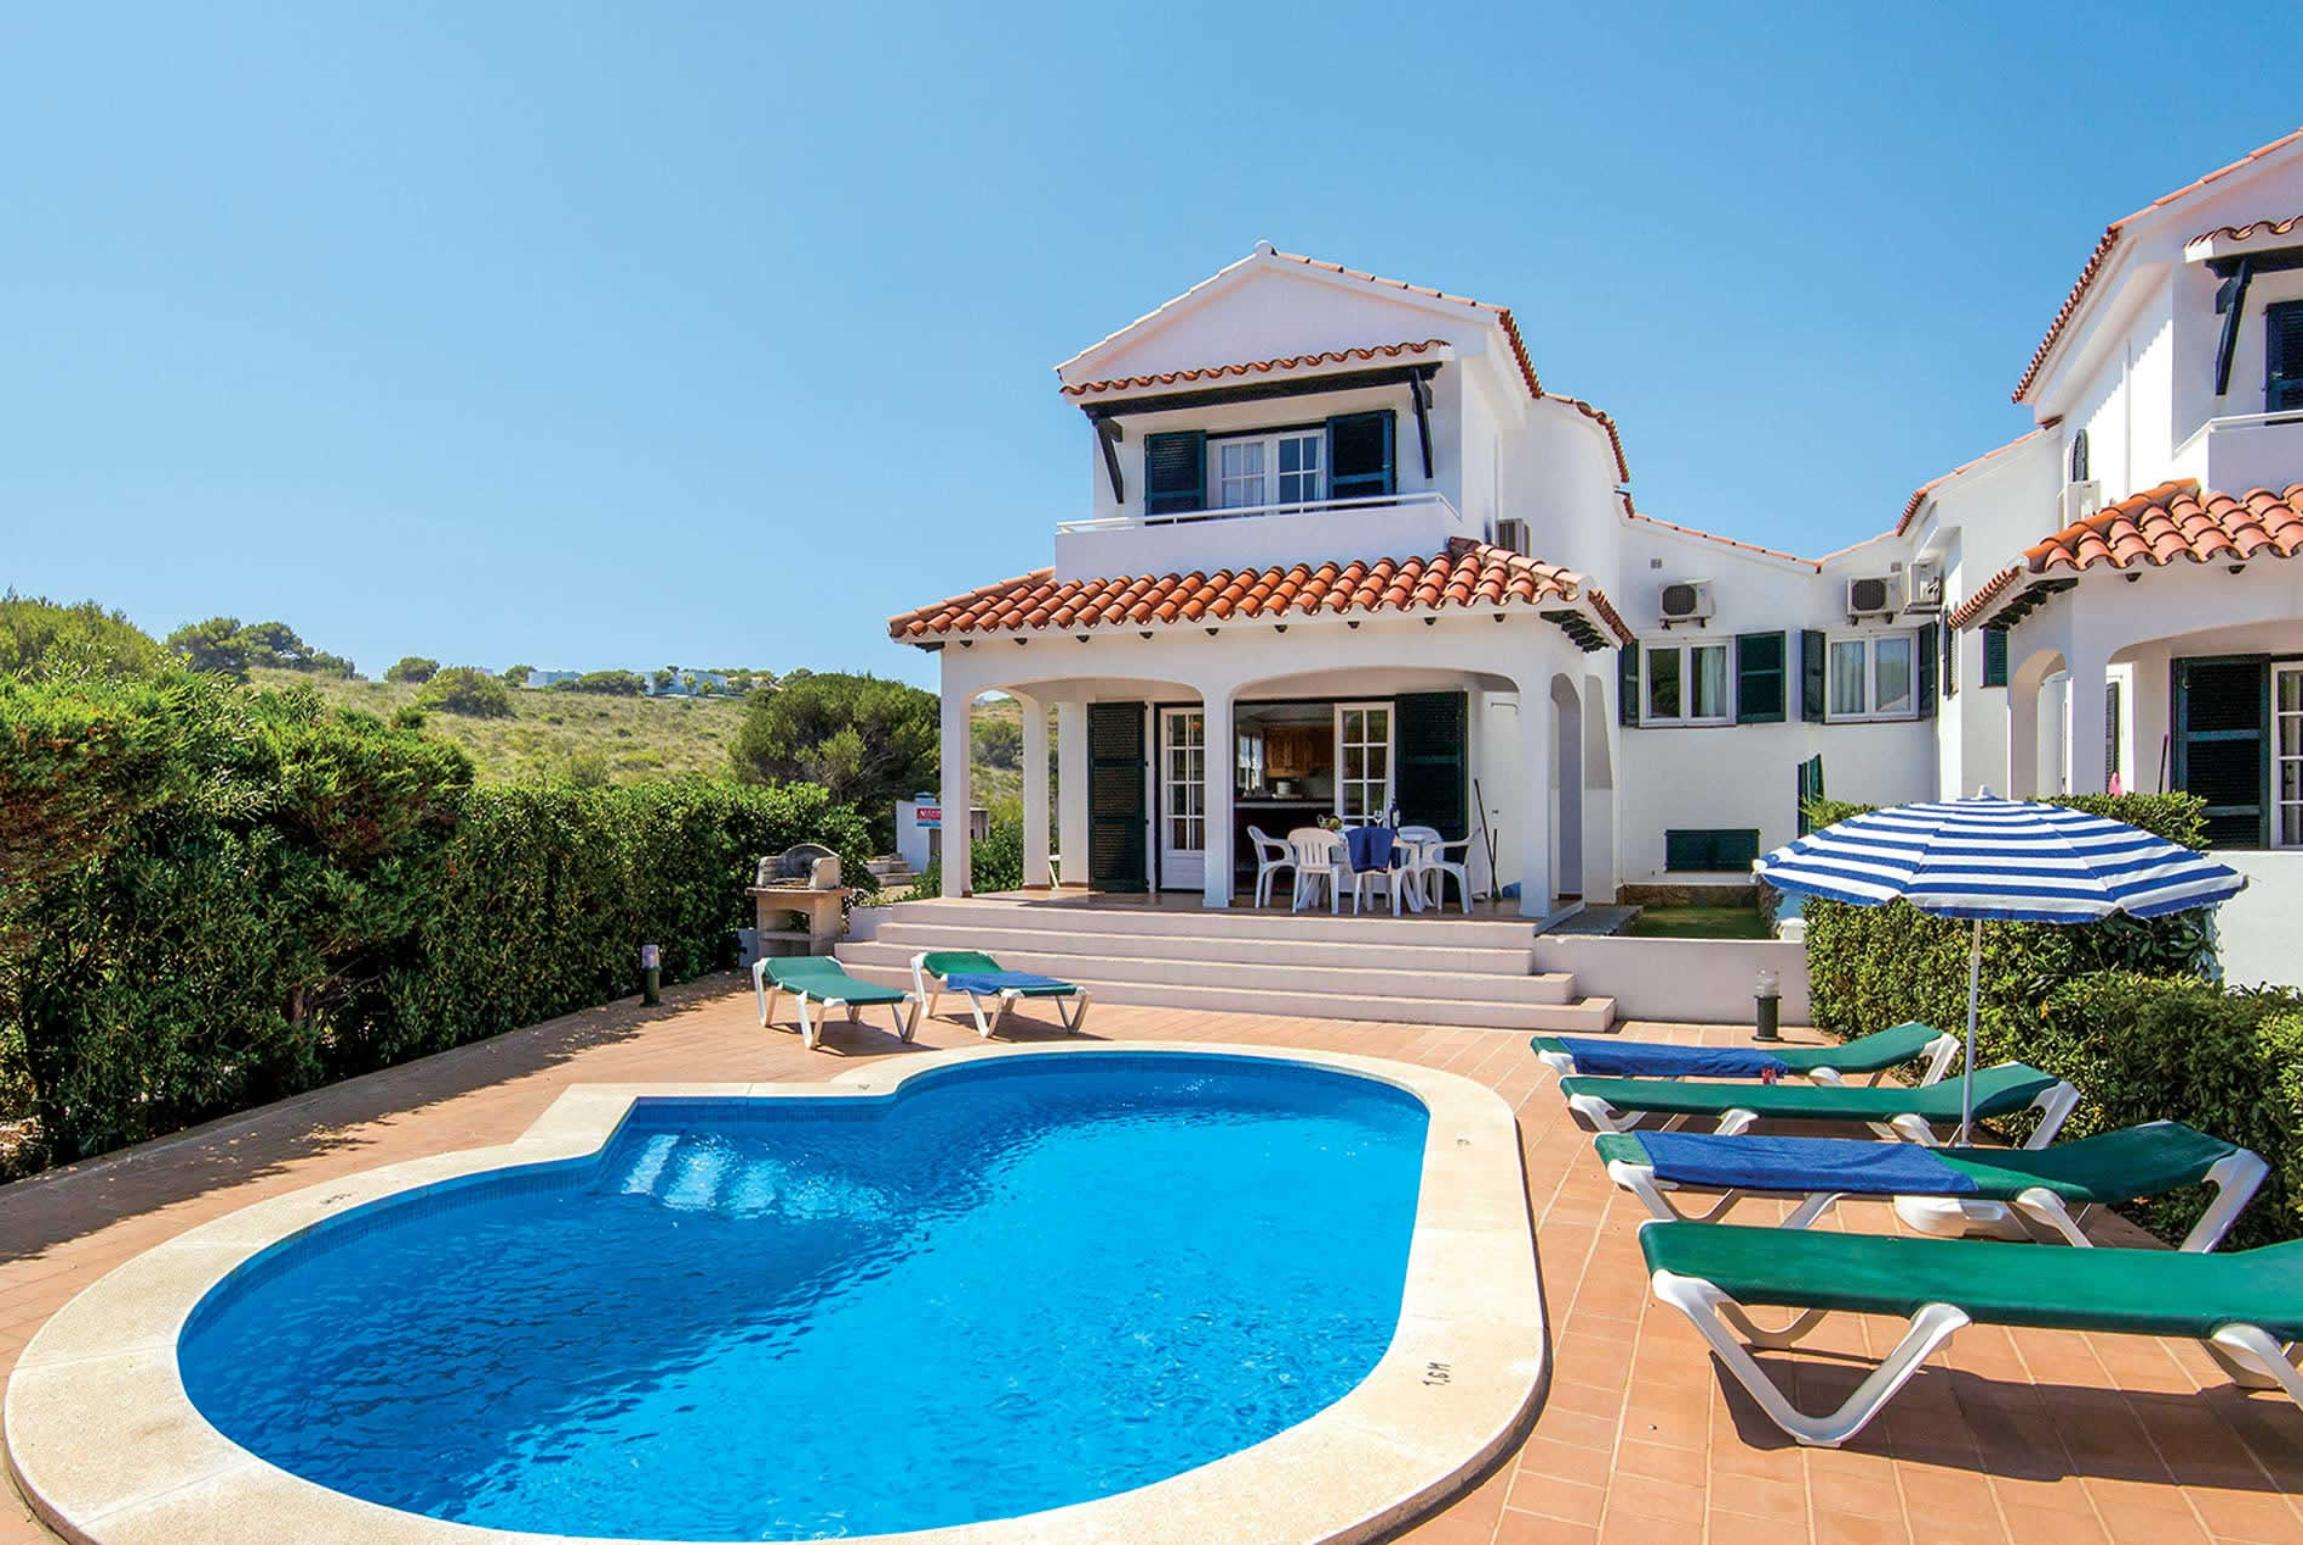 Read more about Sol I Mar villa